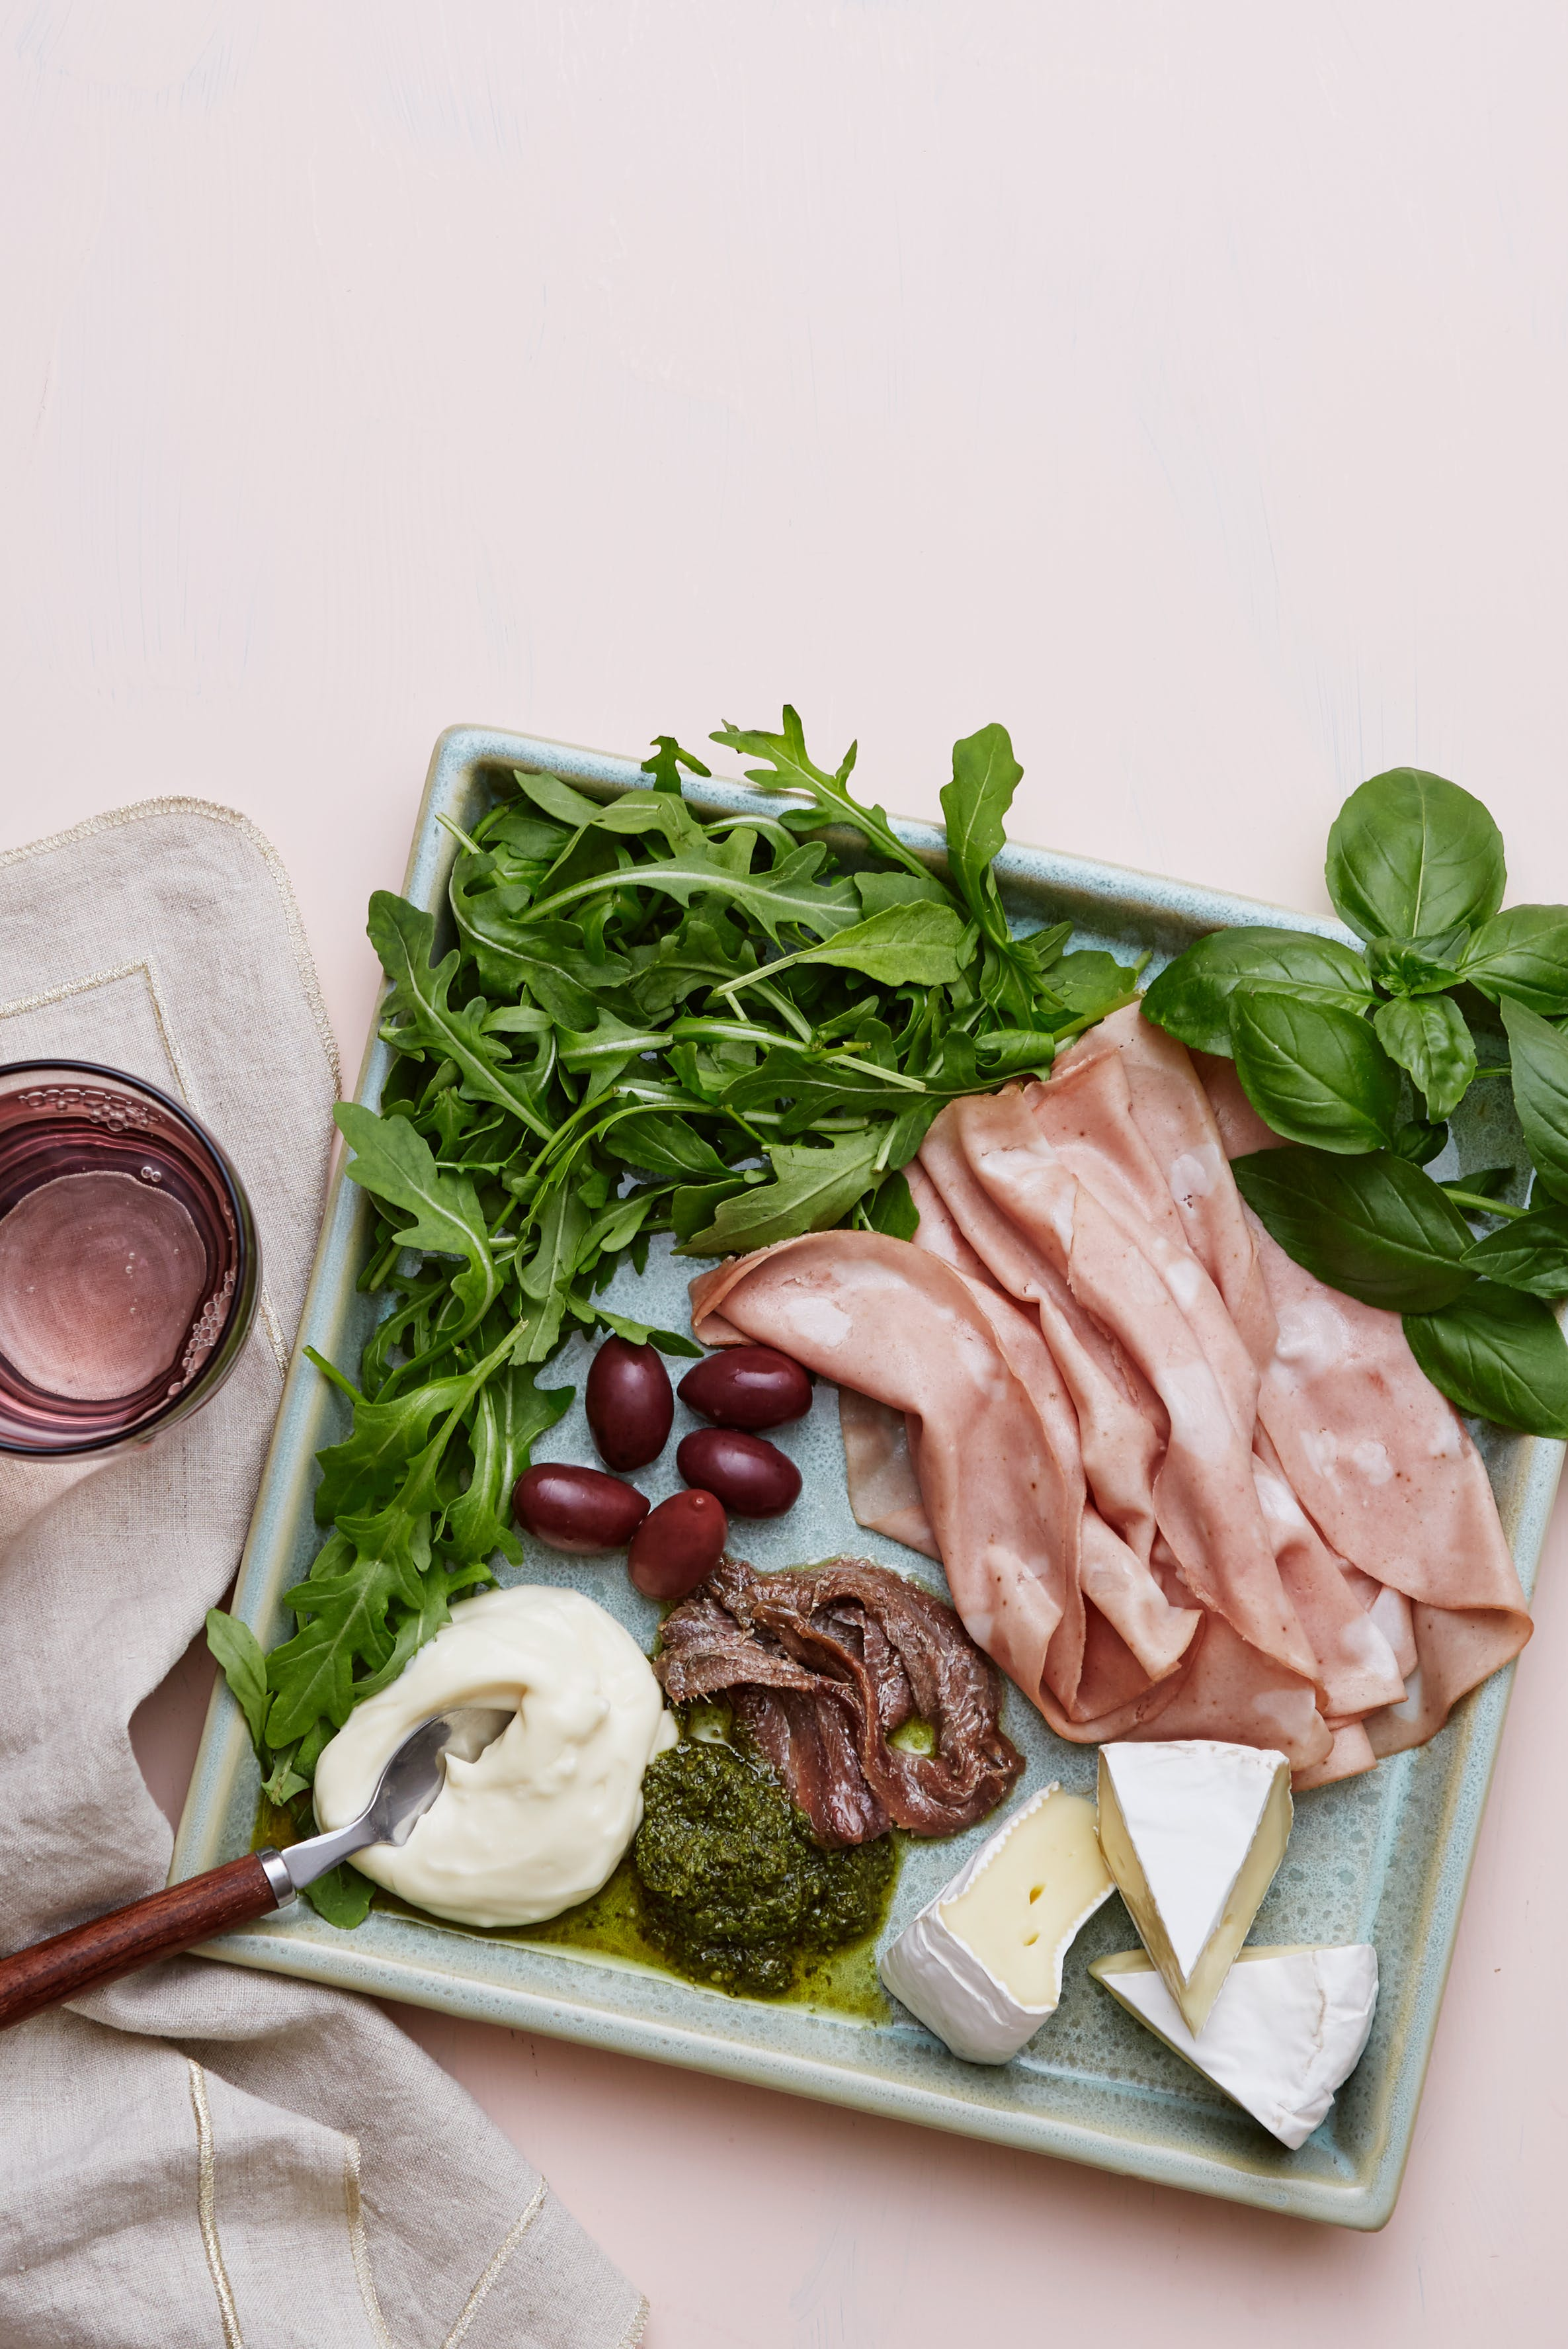 Keto mortadella and Brie plate